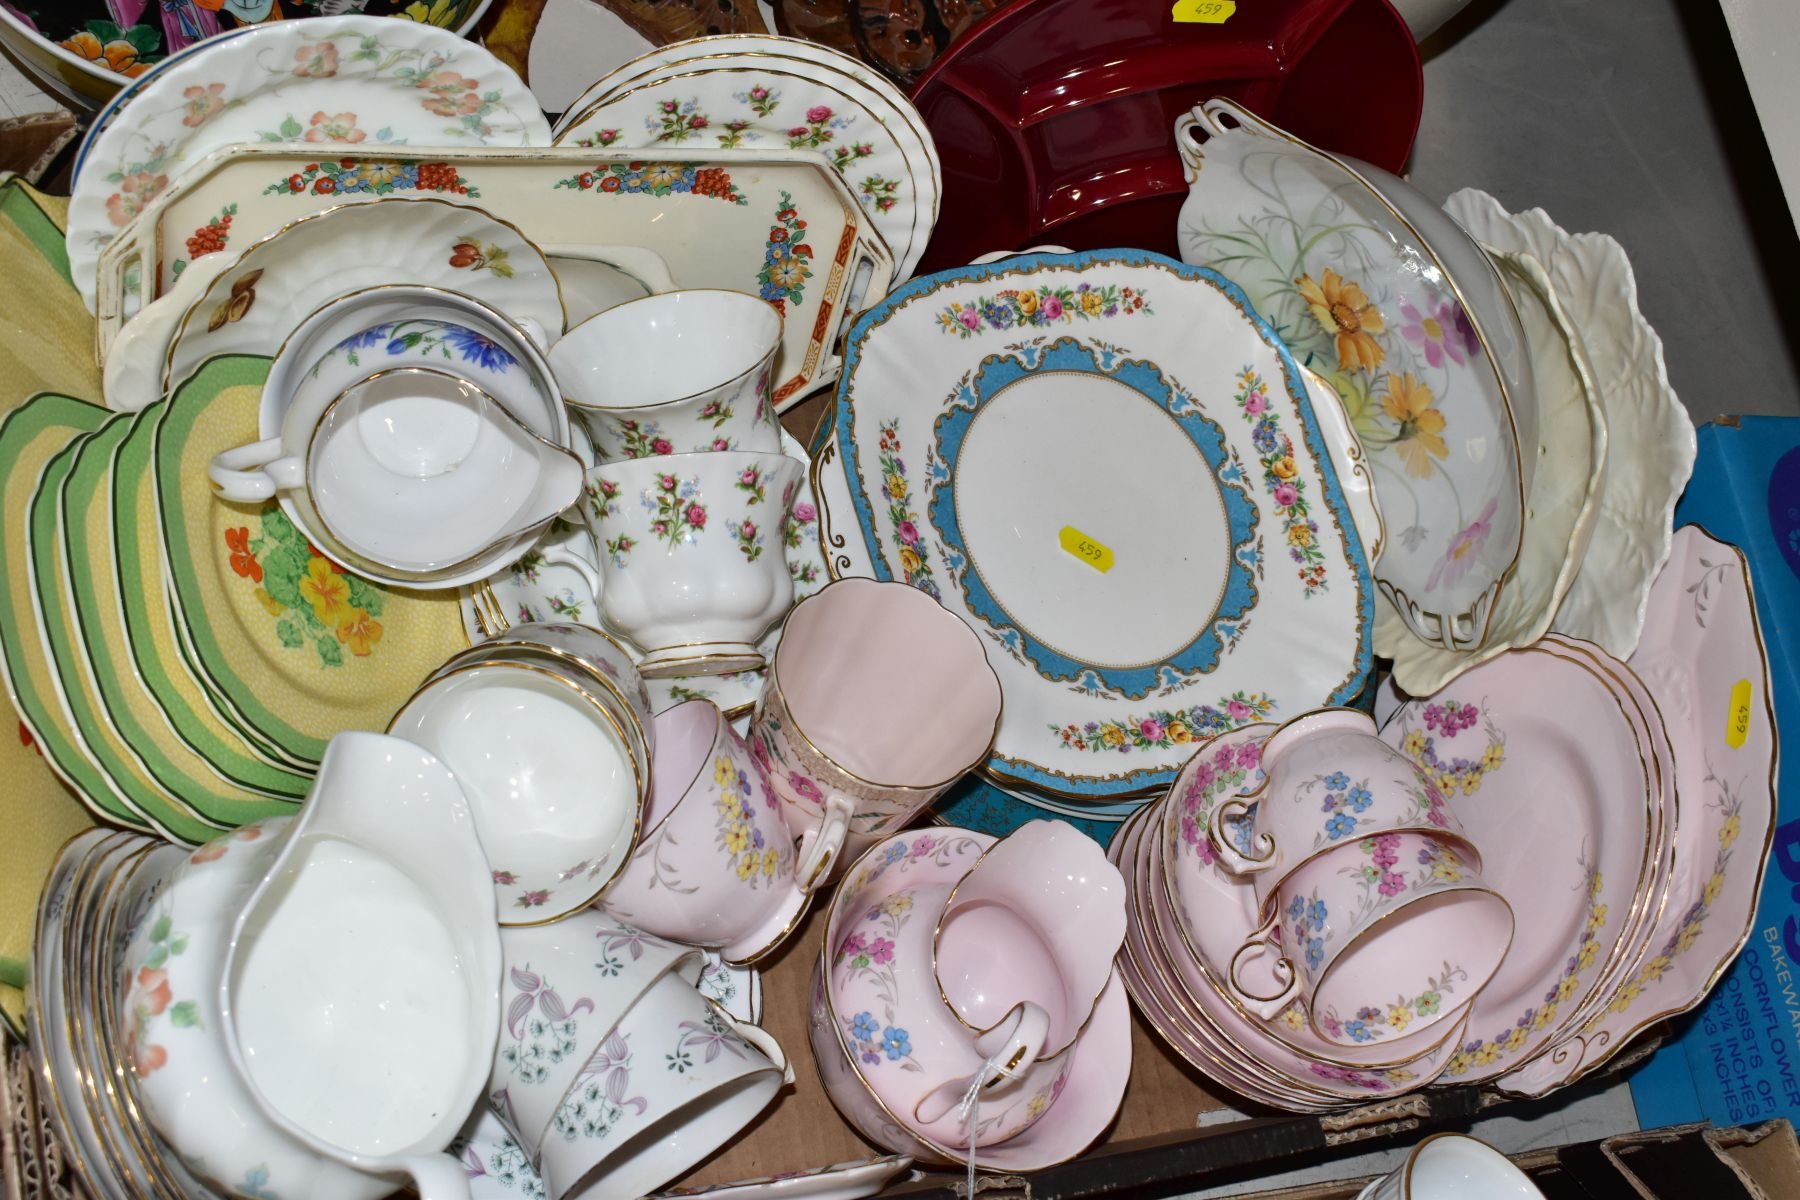 TWO BOXES OF WEDGWOOD ROYAL WORCESTER, ROYAL ALBERT AND TUSCAN CHINA TEA AND DINNER WARES, including - Image 2 of 10